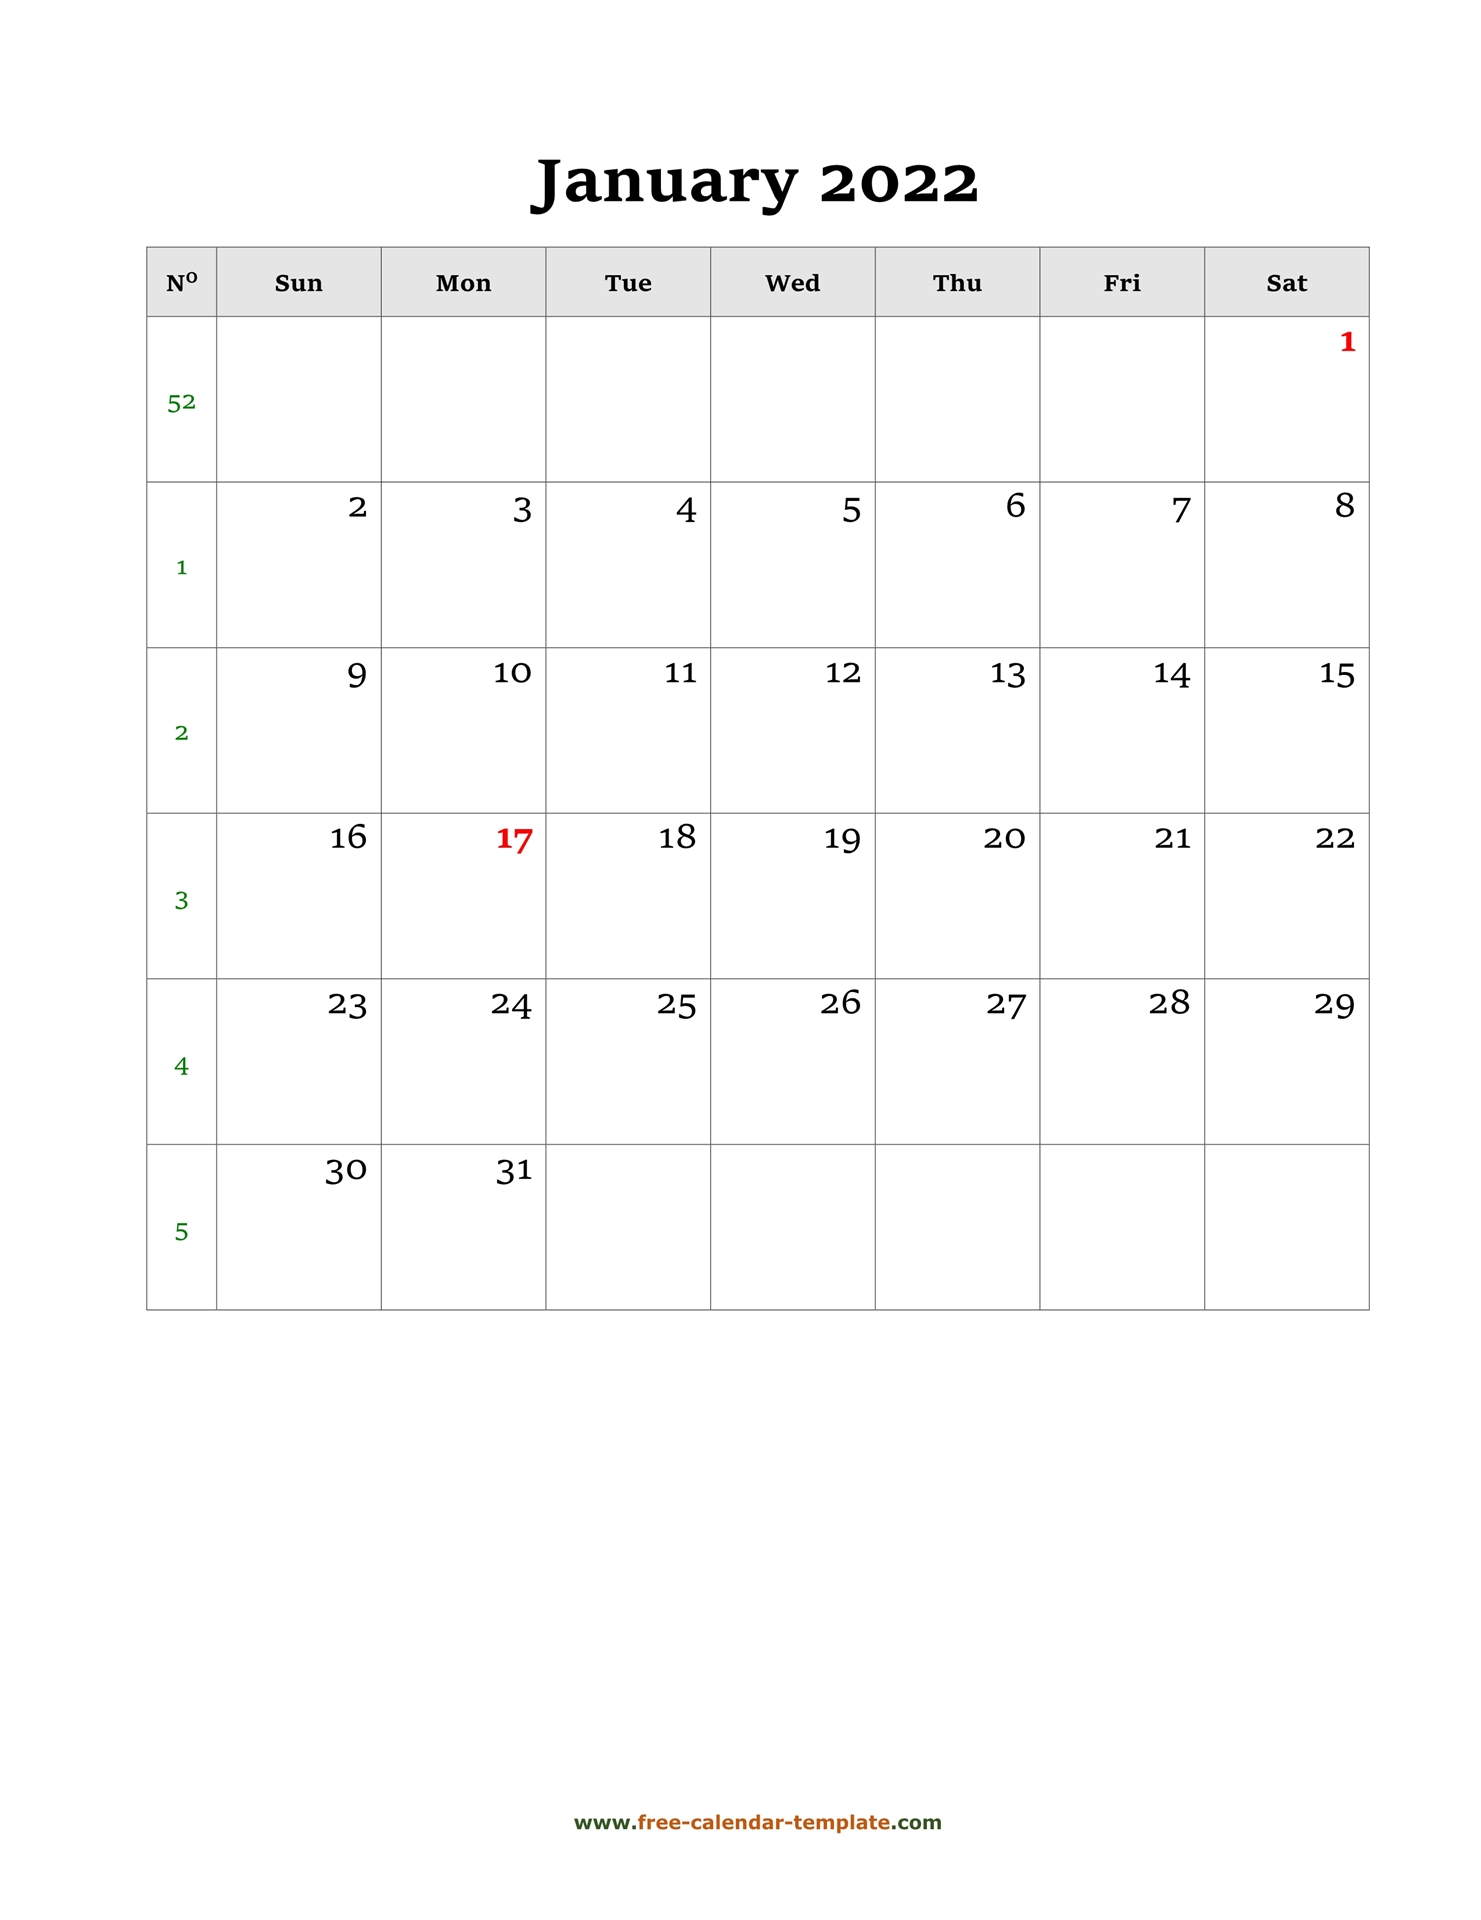 Monthly Calendar 2022 Simple Design With Large Box On Each